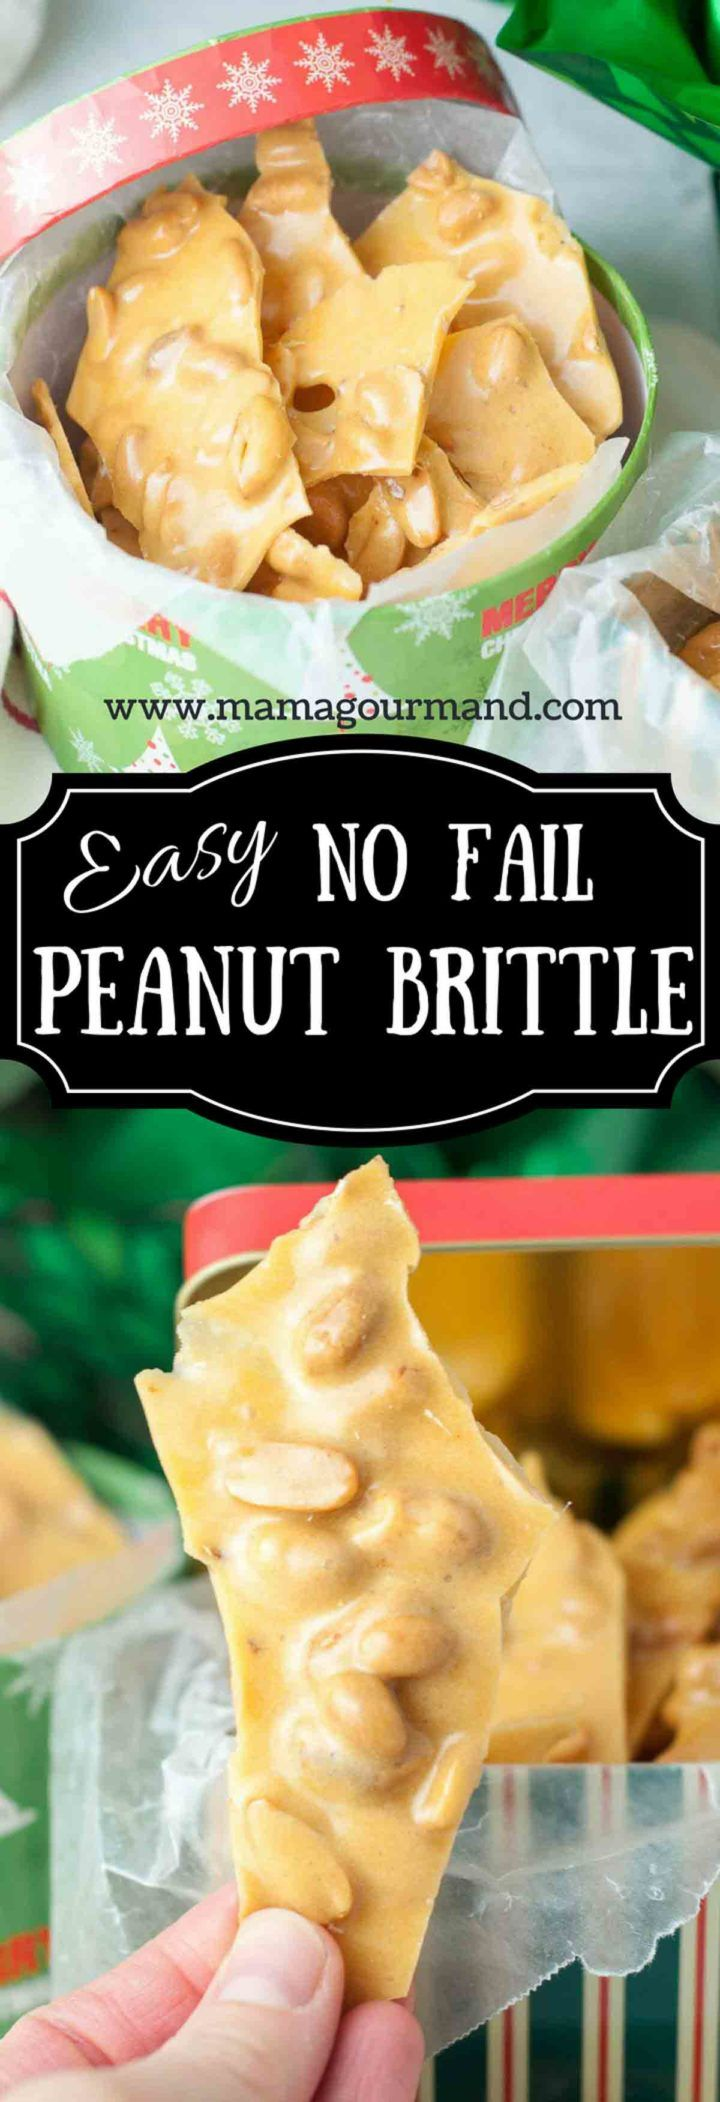 No Fail Peanut Brittle is an easy homemade snack that also makes the perfect holiday gift. http://www.mamagourmand.com